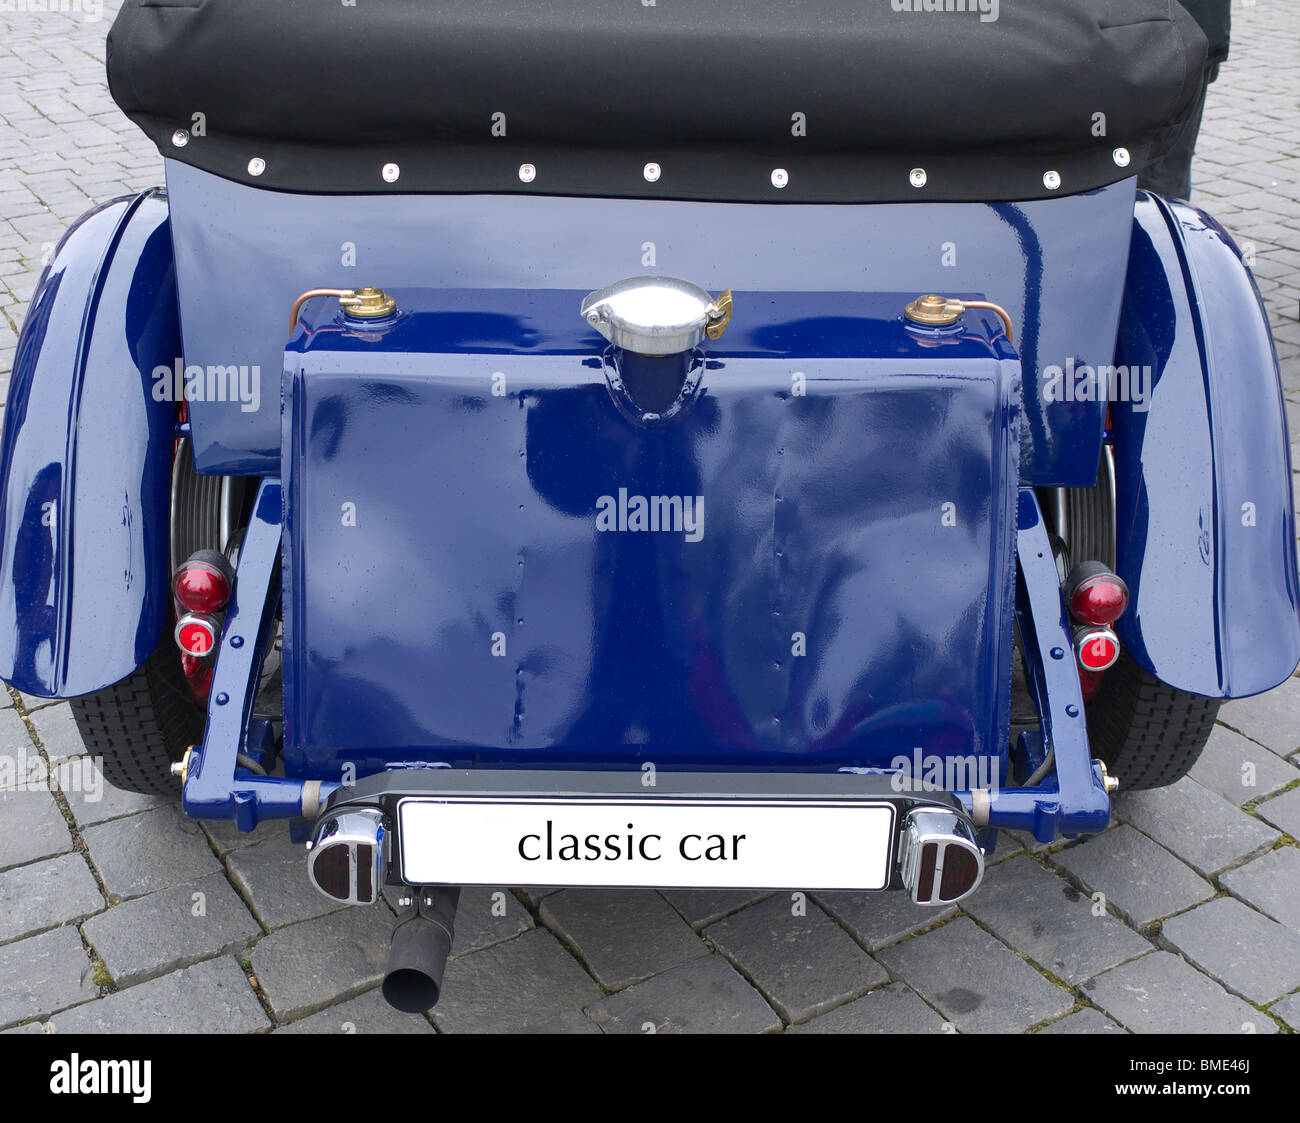 Rear of a classic car - Stock Image